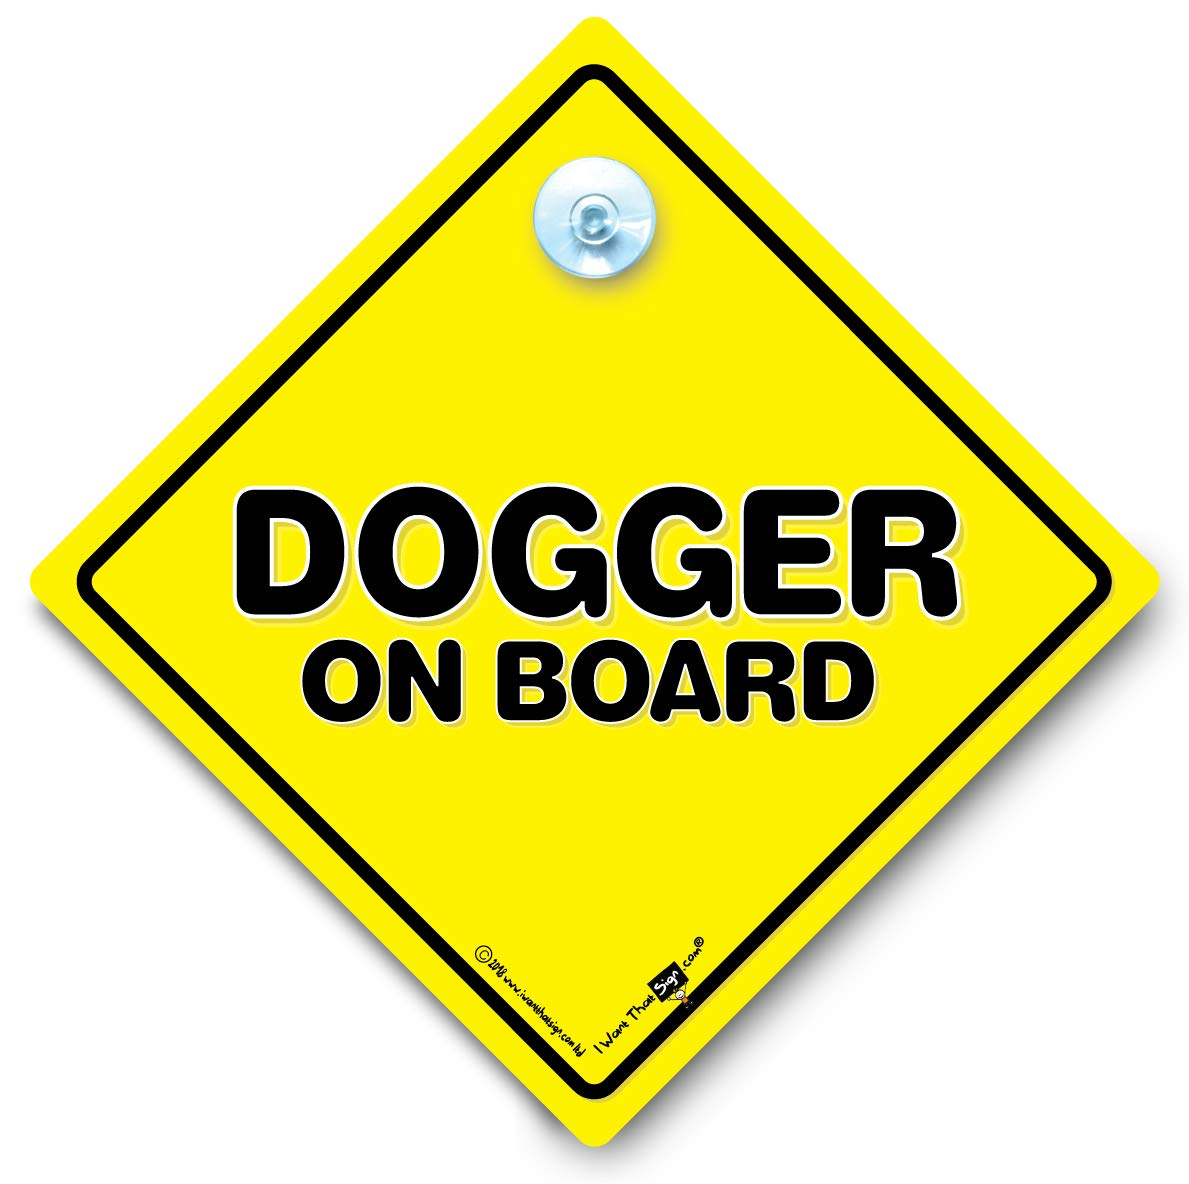 Dogger On Board Car Sign Joke Car Signage Rude Car Signs Baby On Board Style Suction Cup Car Window Sign